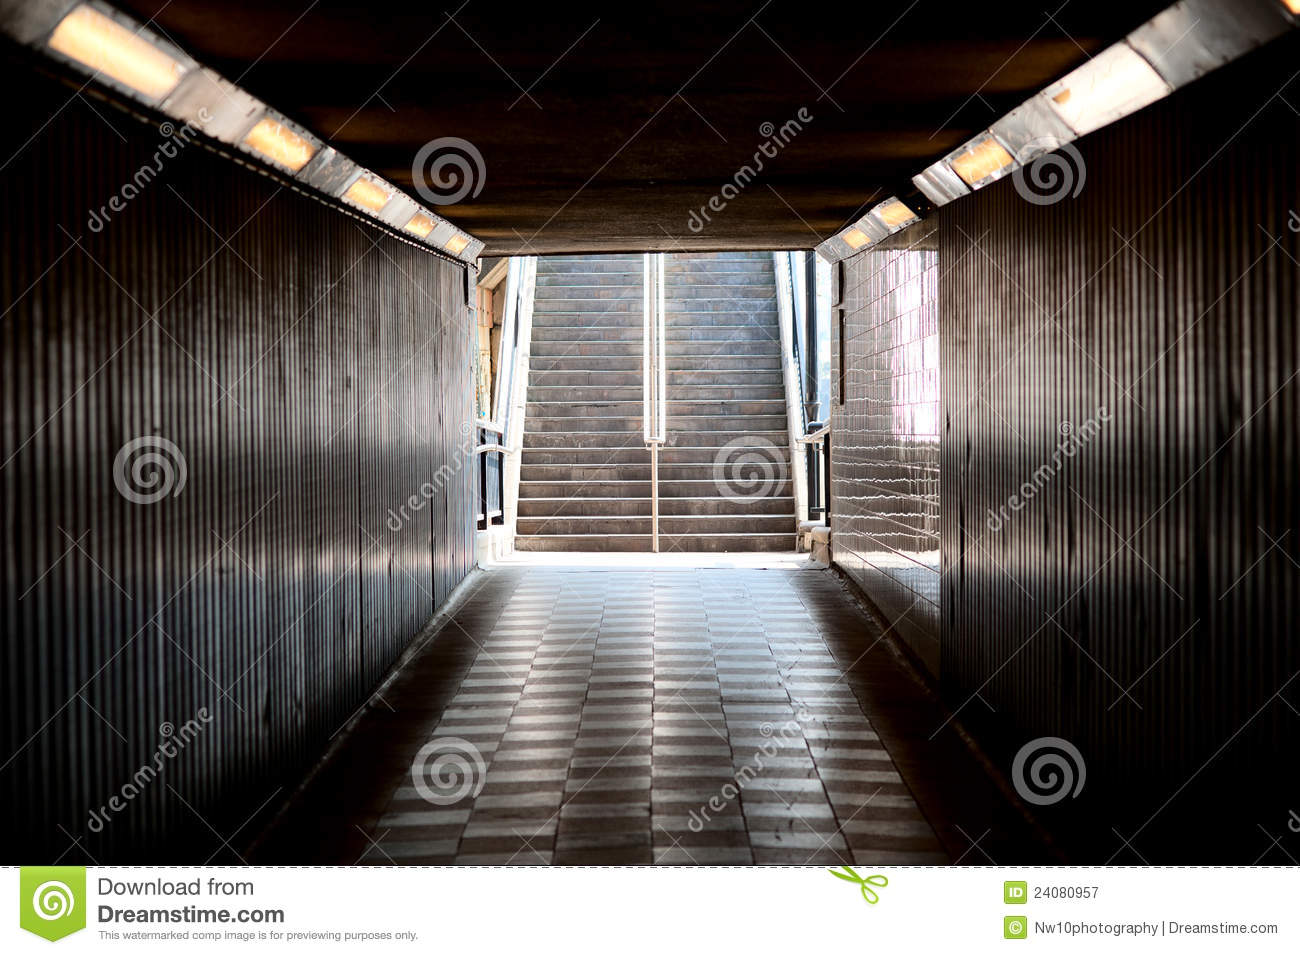 Pedestrian Subway Underpass Stock Image Image Of